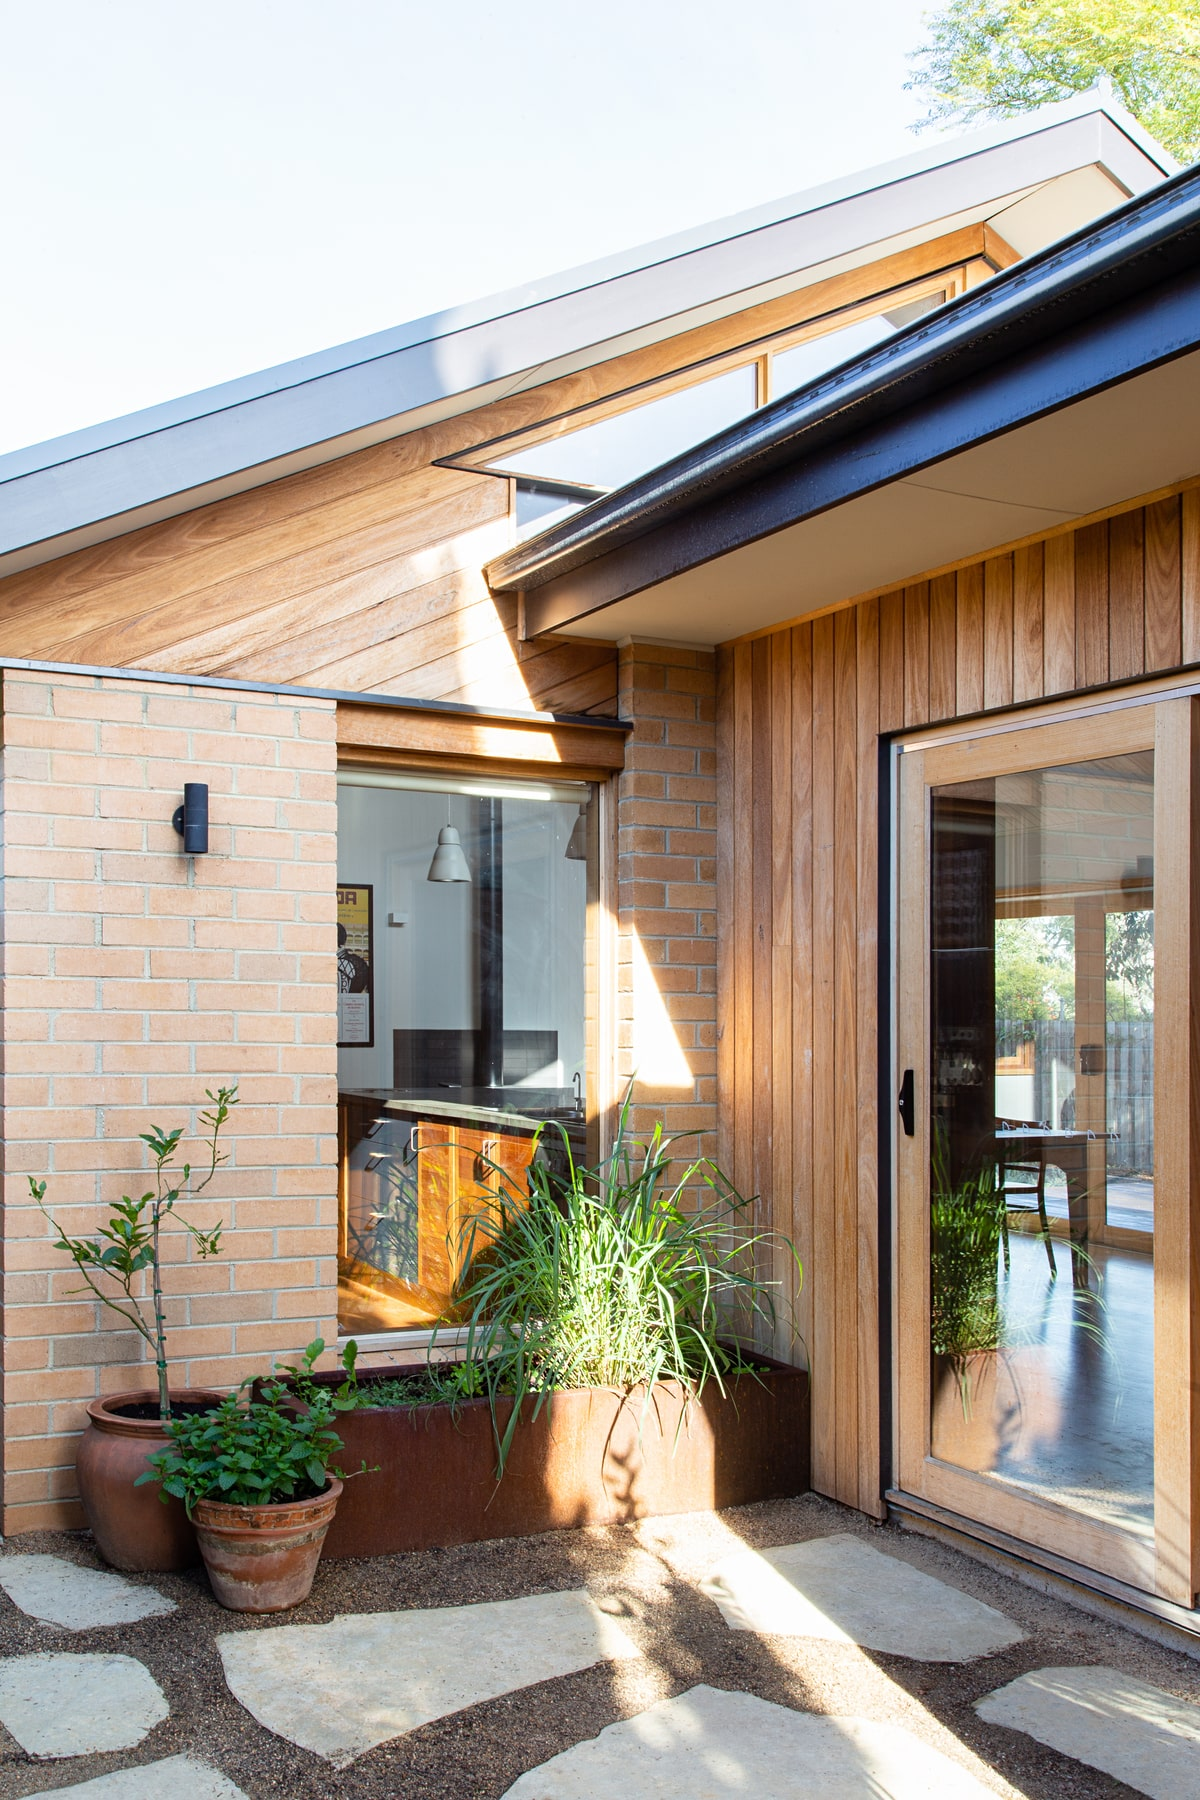 Bungalow Upcycle Project By Brave New Eco Local Design And Interiors Pascoe Vale, South Vic Image 5